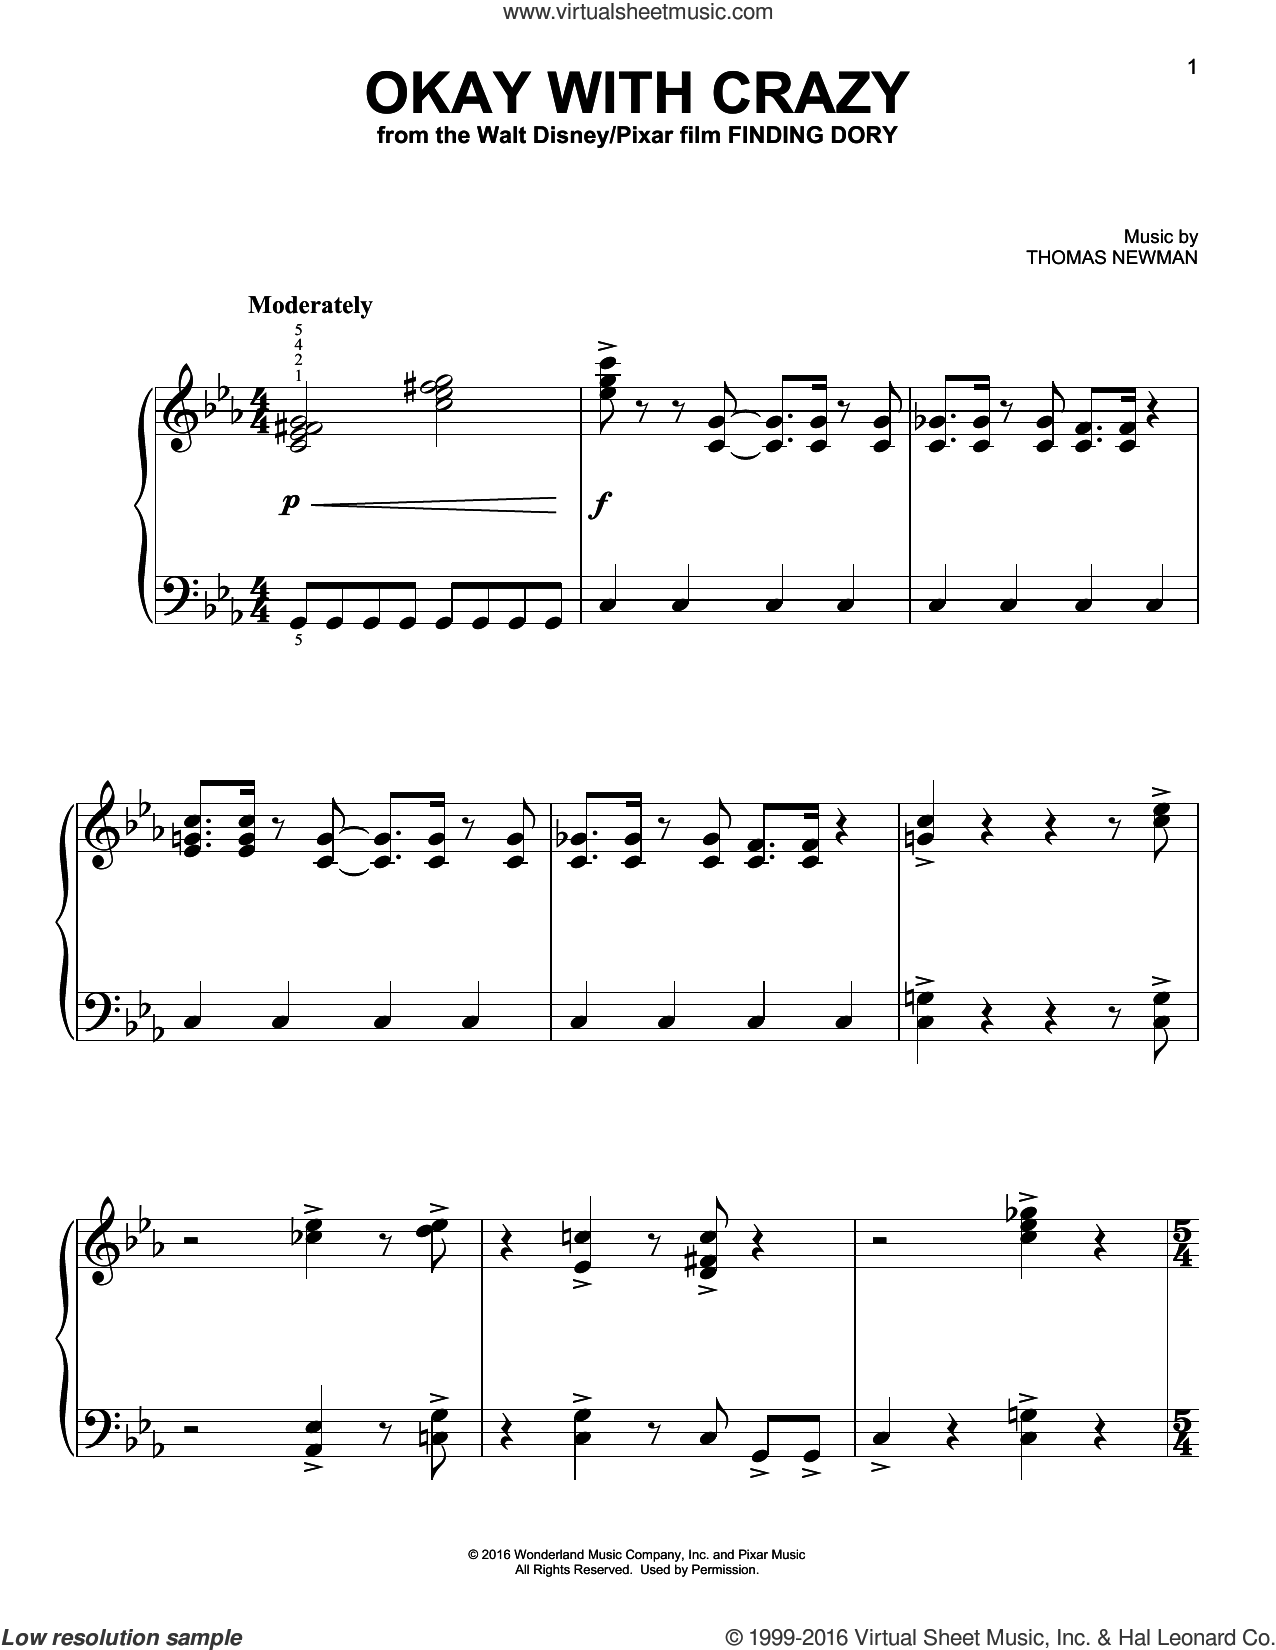 Okay With Crazy sheet music for piano solo by Thomas Newman, easy skill level